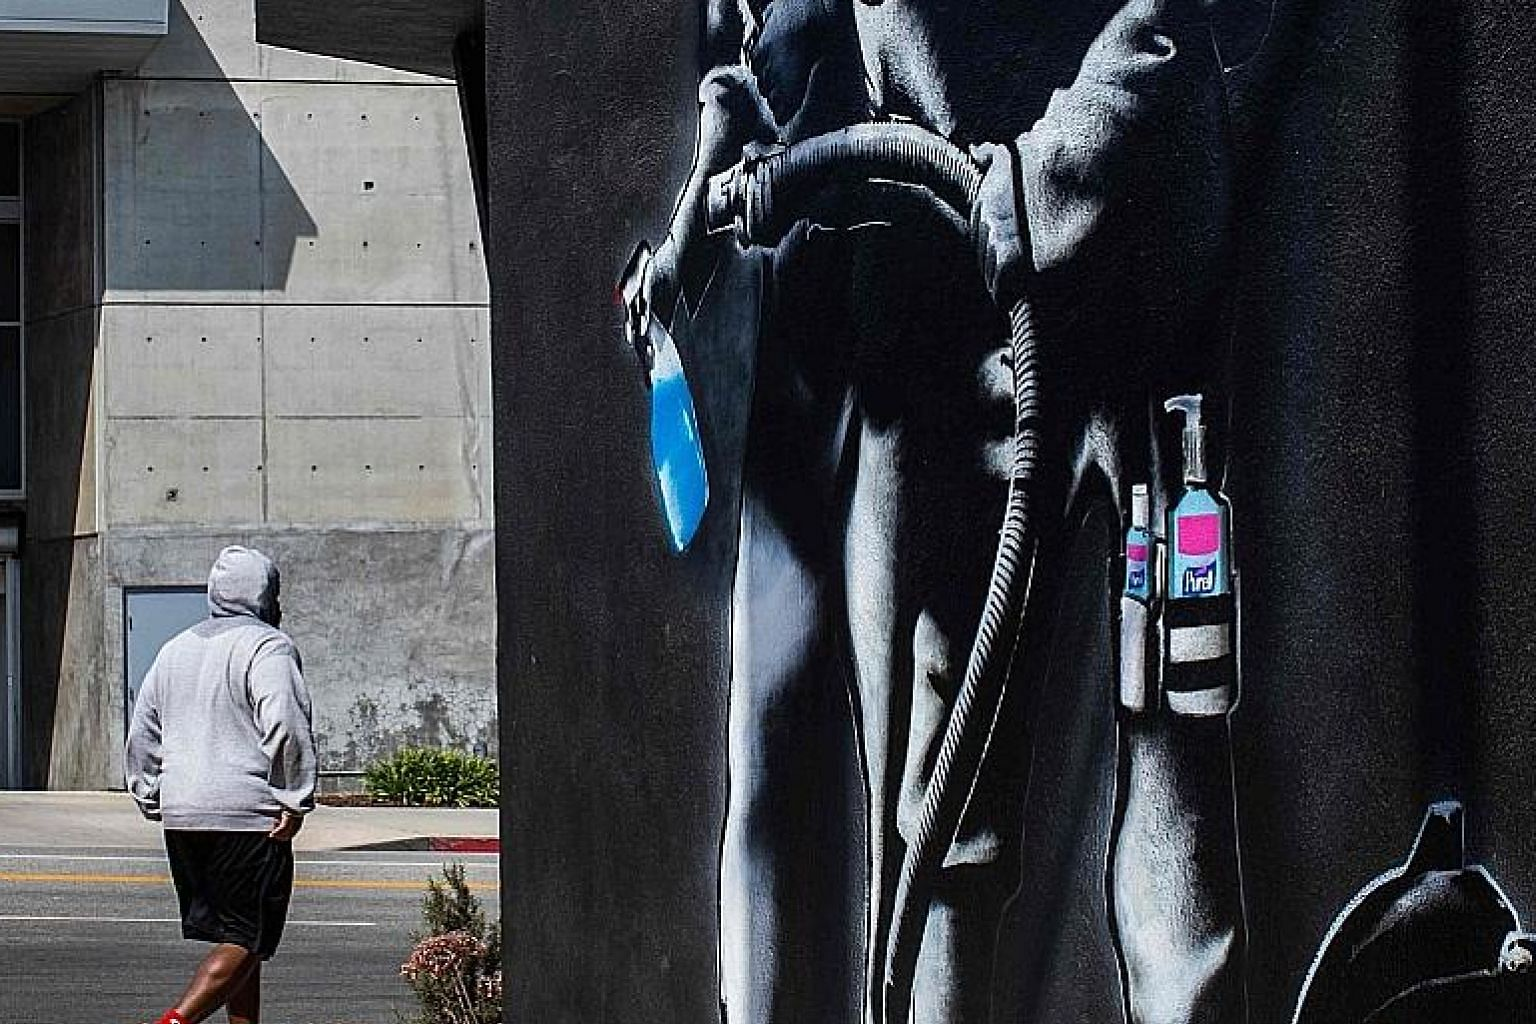 An apocalyptic mural in Los Angeles, California, by Hijackhart, where soldiers wearing face masks fight the Covid-19 disease with disinfectant and hand sanitiser amid the coronavirus pandemic. Delayed responses by China and the US (and Europe) have i